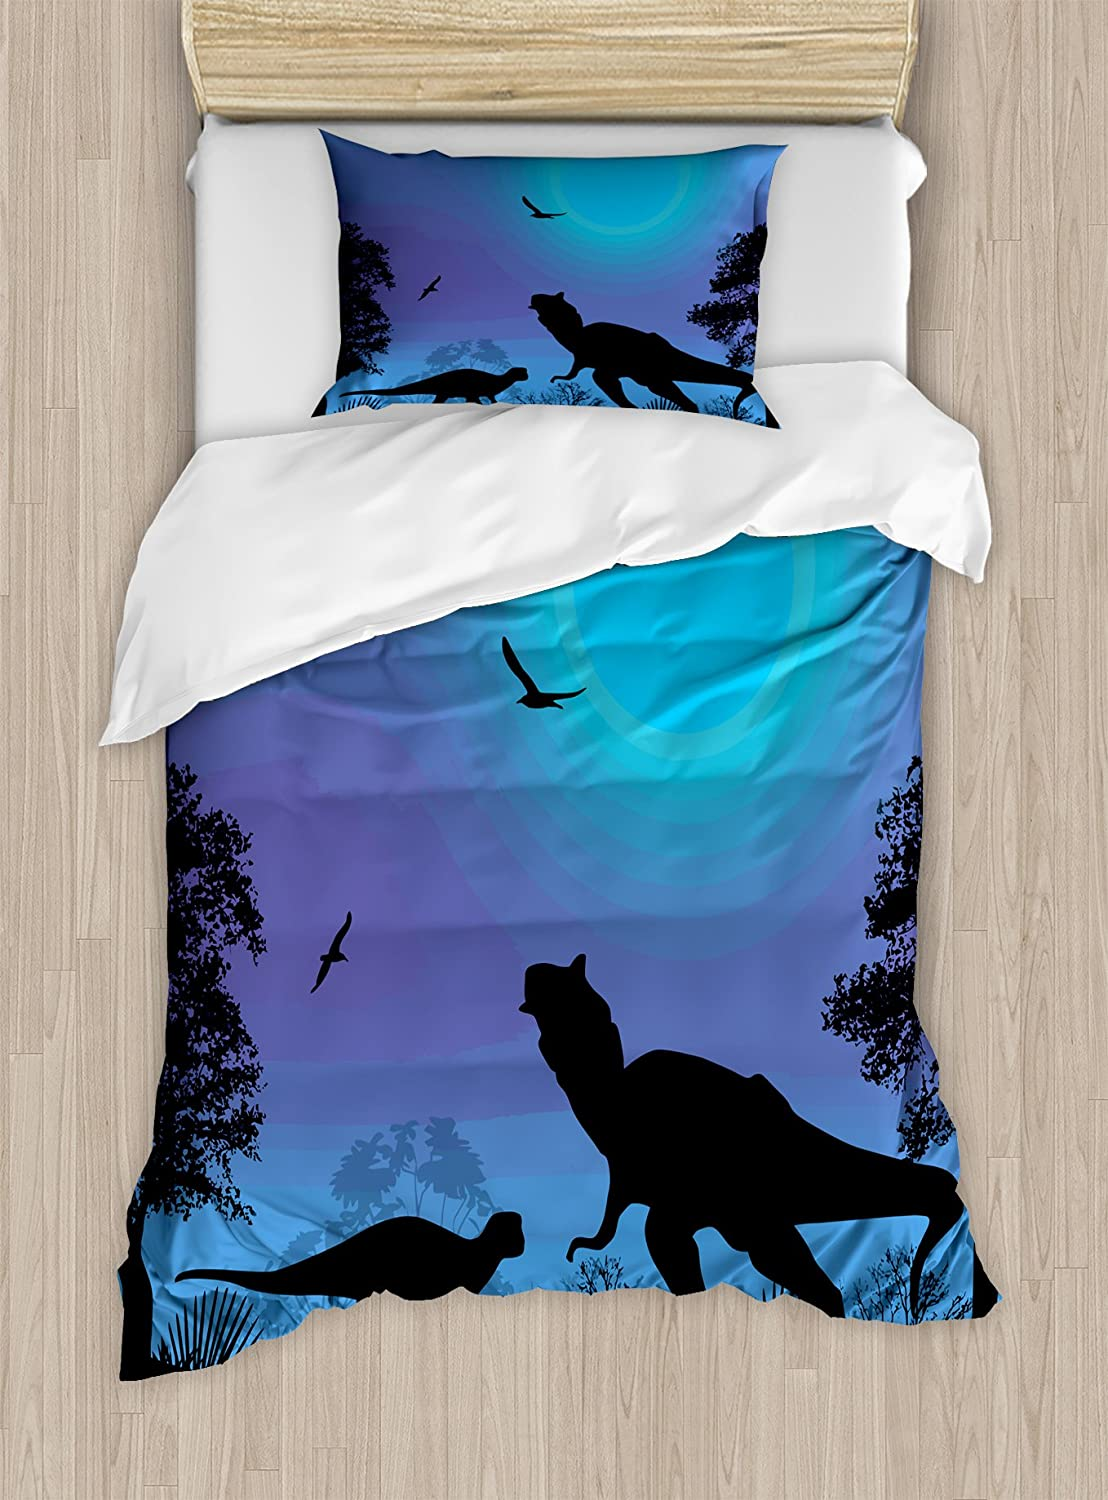 Lunarable Dinosaur Duvet Cover Set, Roaming Dinosaurs at Night with Deep Blue Sky Prehistoric Rural Landscape, Decorative 2 Piece Bedding Set with 1 Pillow Sham, Twin Size, Black Lilac